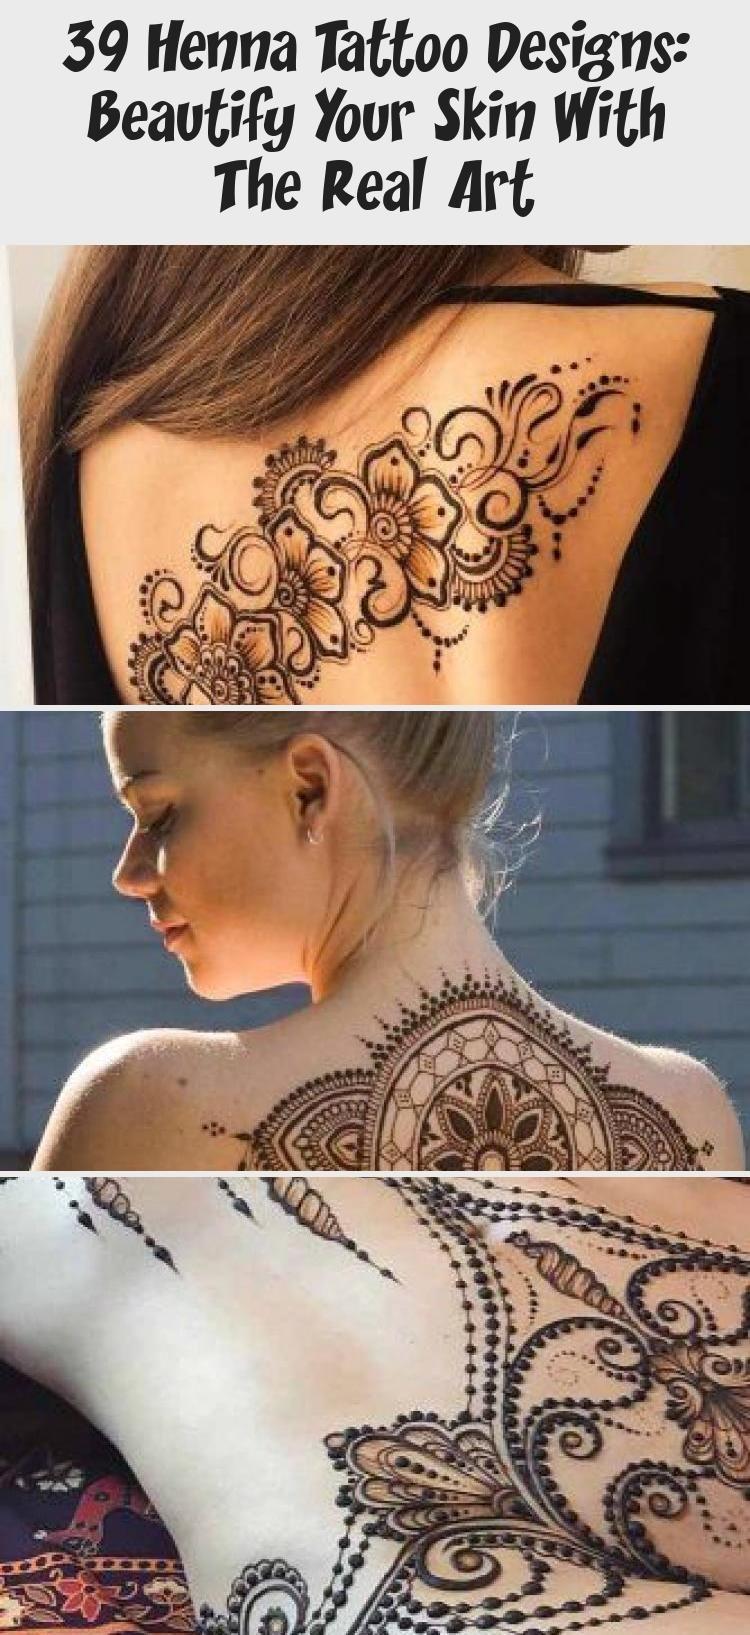 39 henna tattoo designs beautify your skin with the real